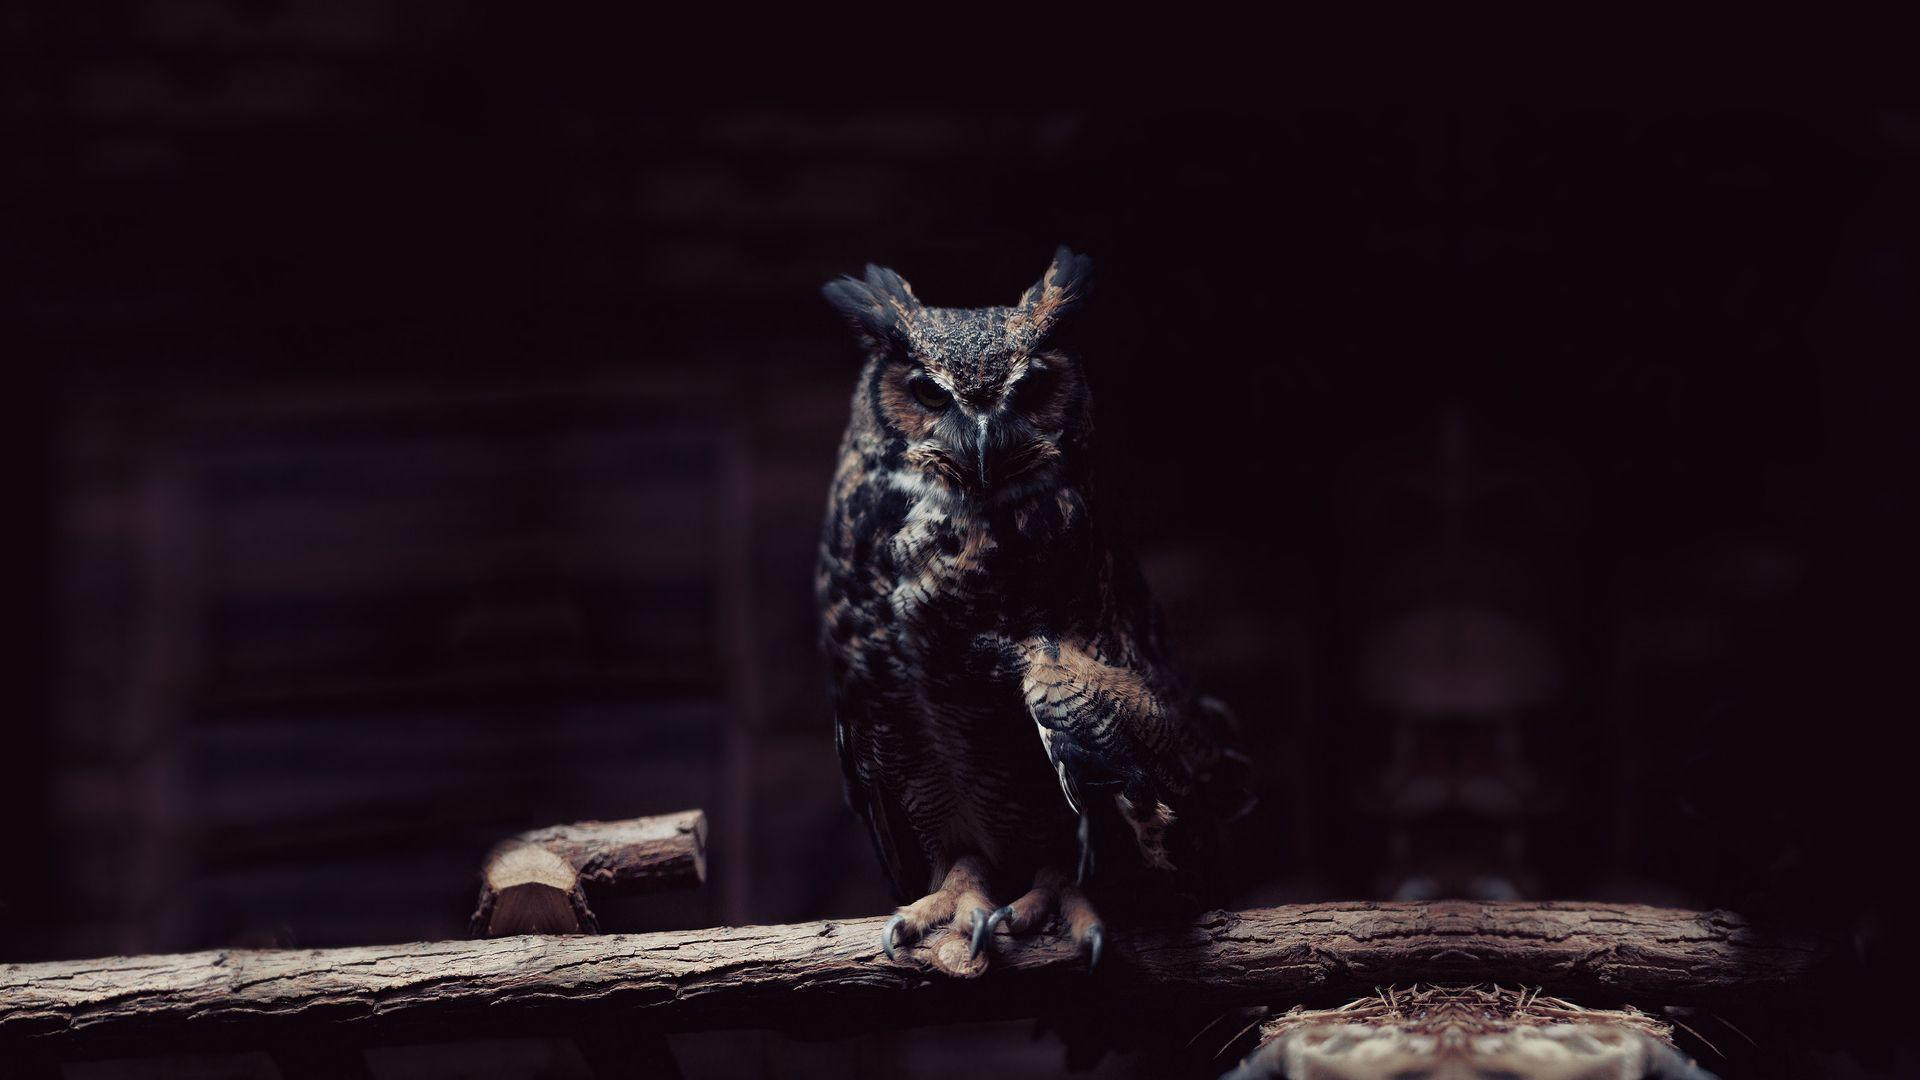 owl wallpaper | owl wallpaper - Part 2